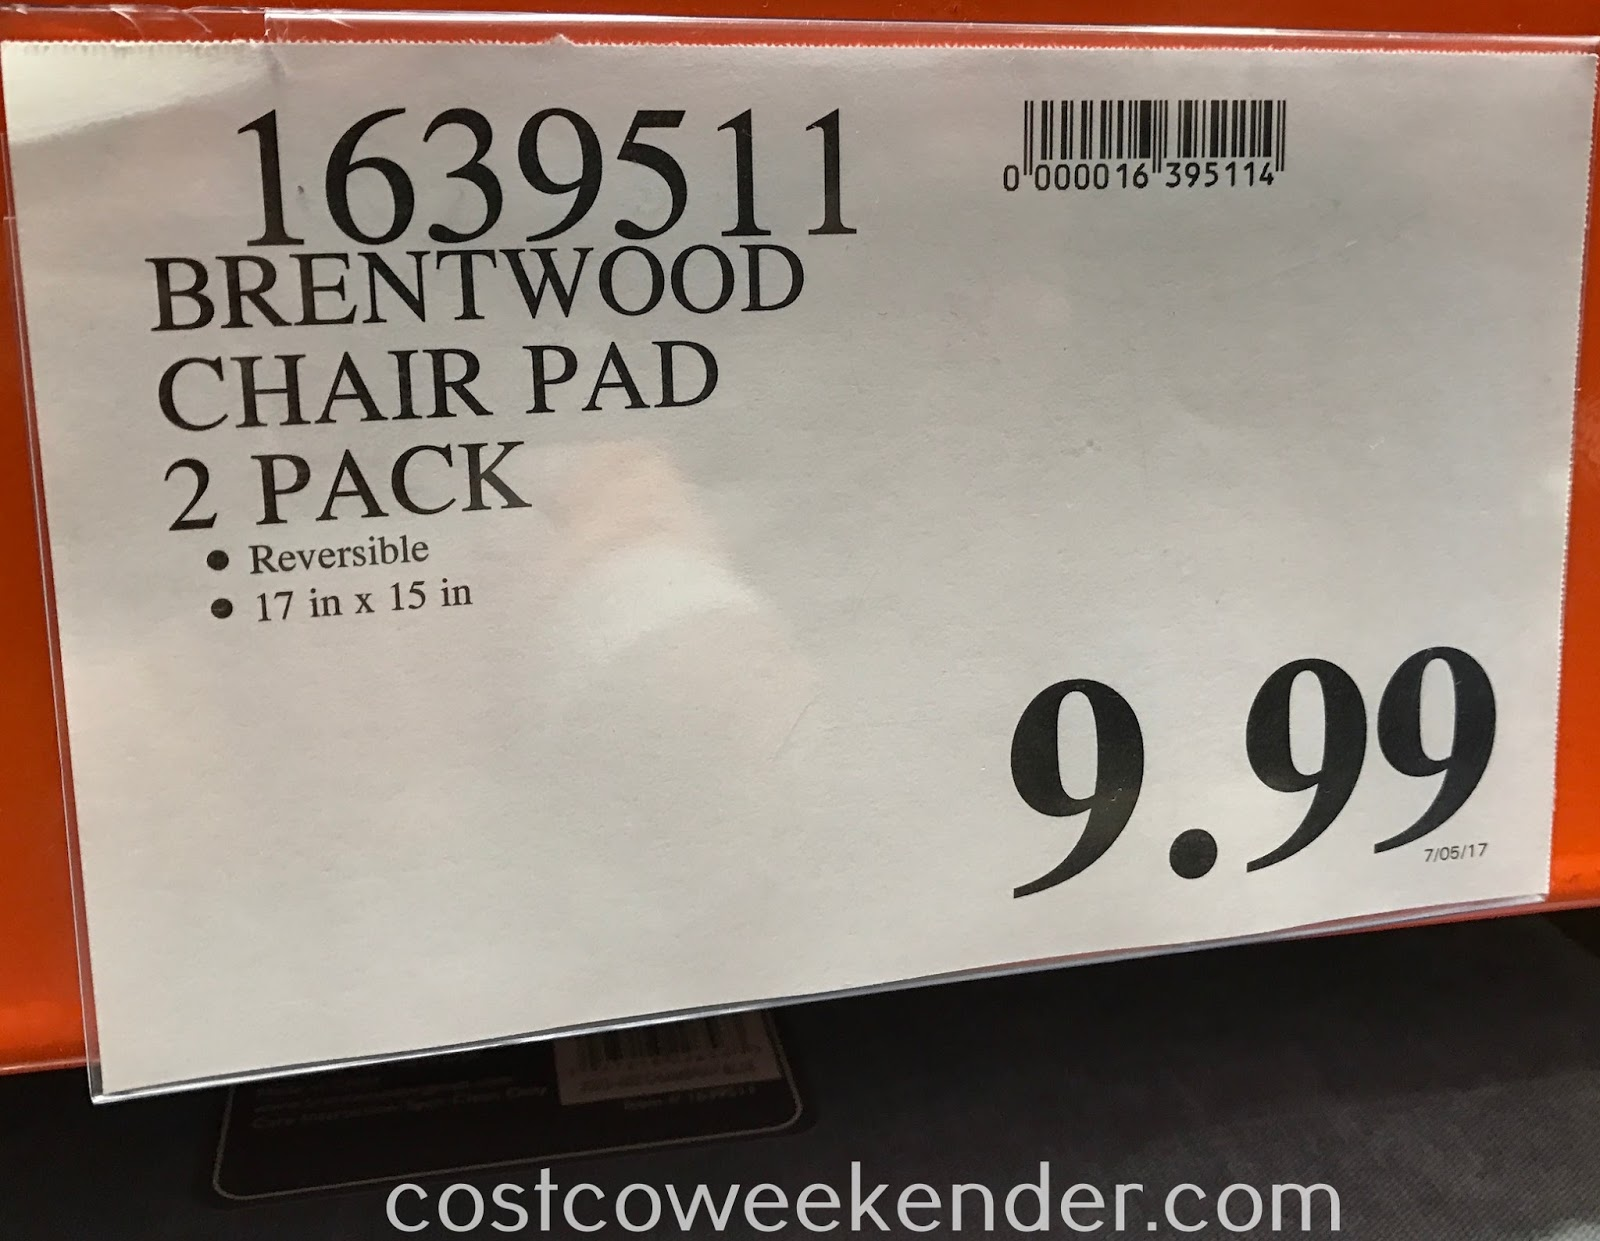 Costco 1639511   Deal For A 2 Pack Of Brentwood Chair Pads At Costco